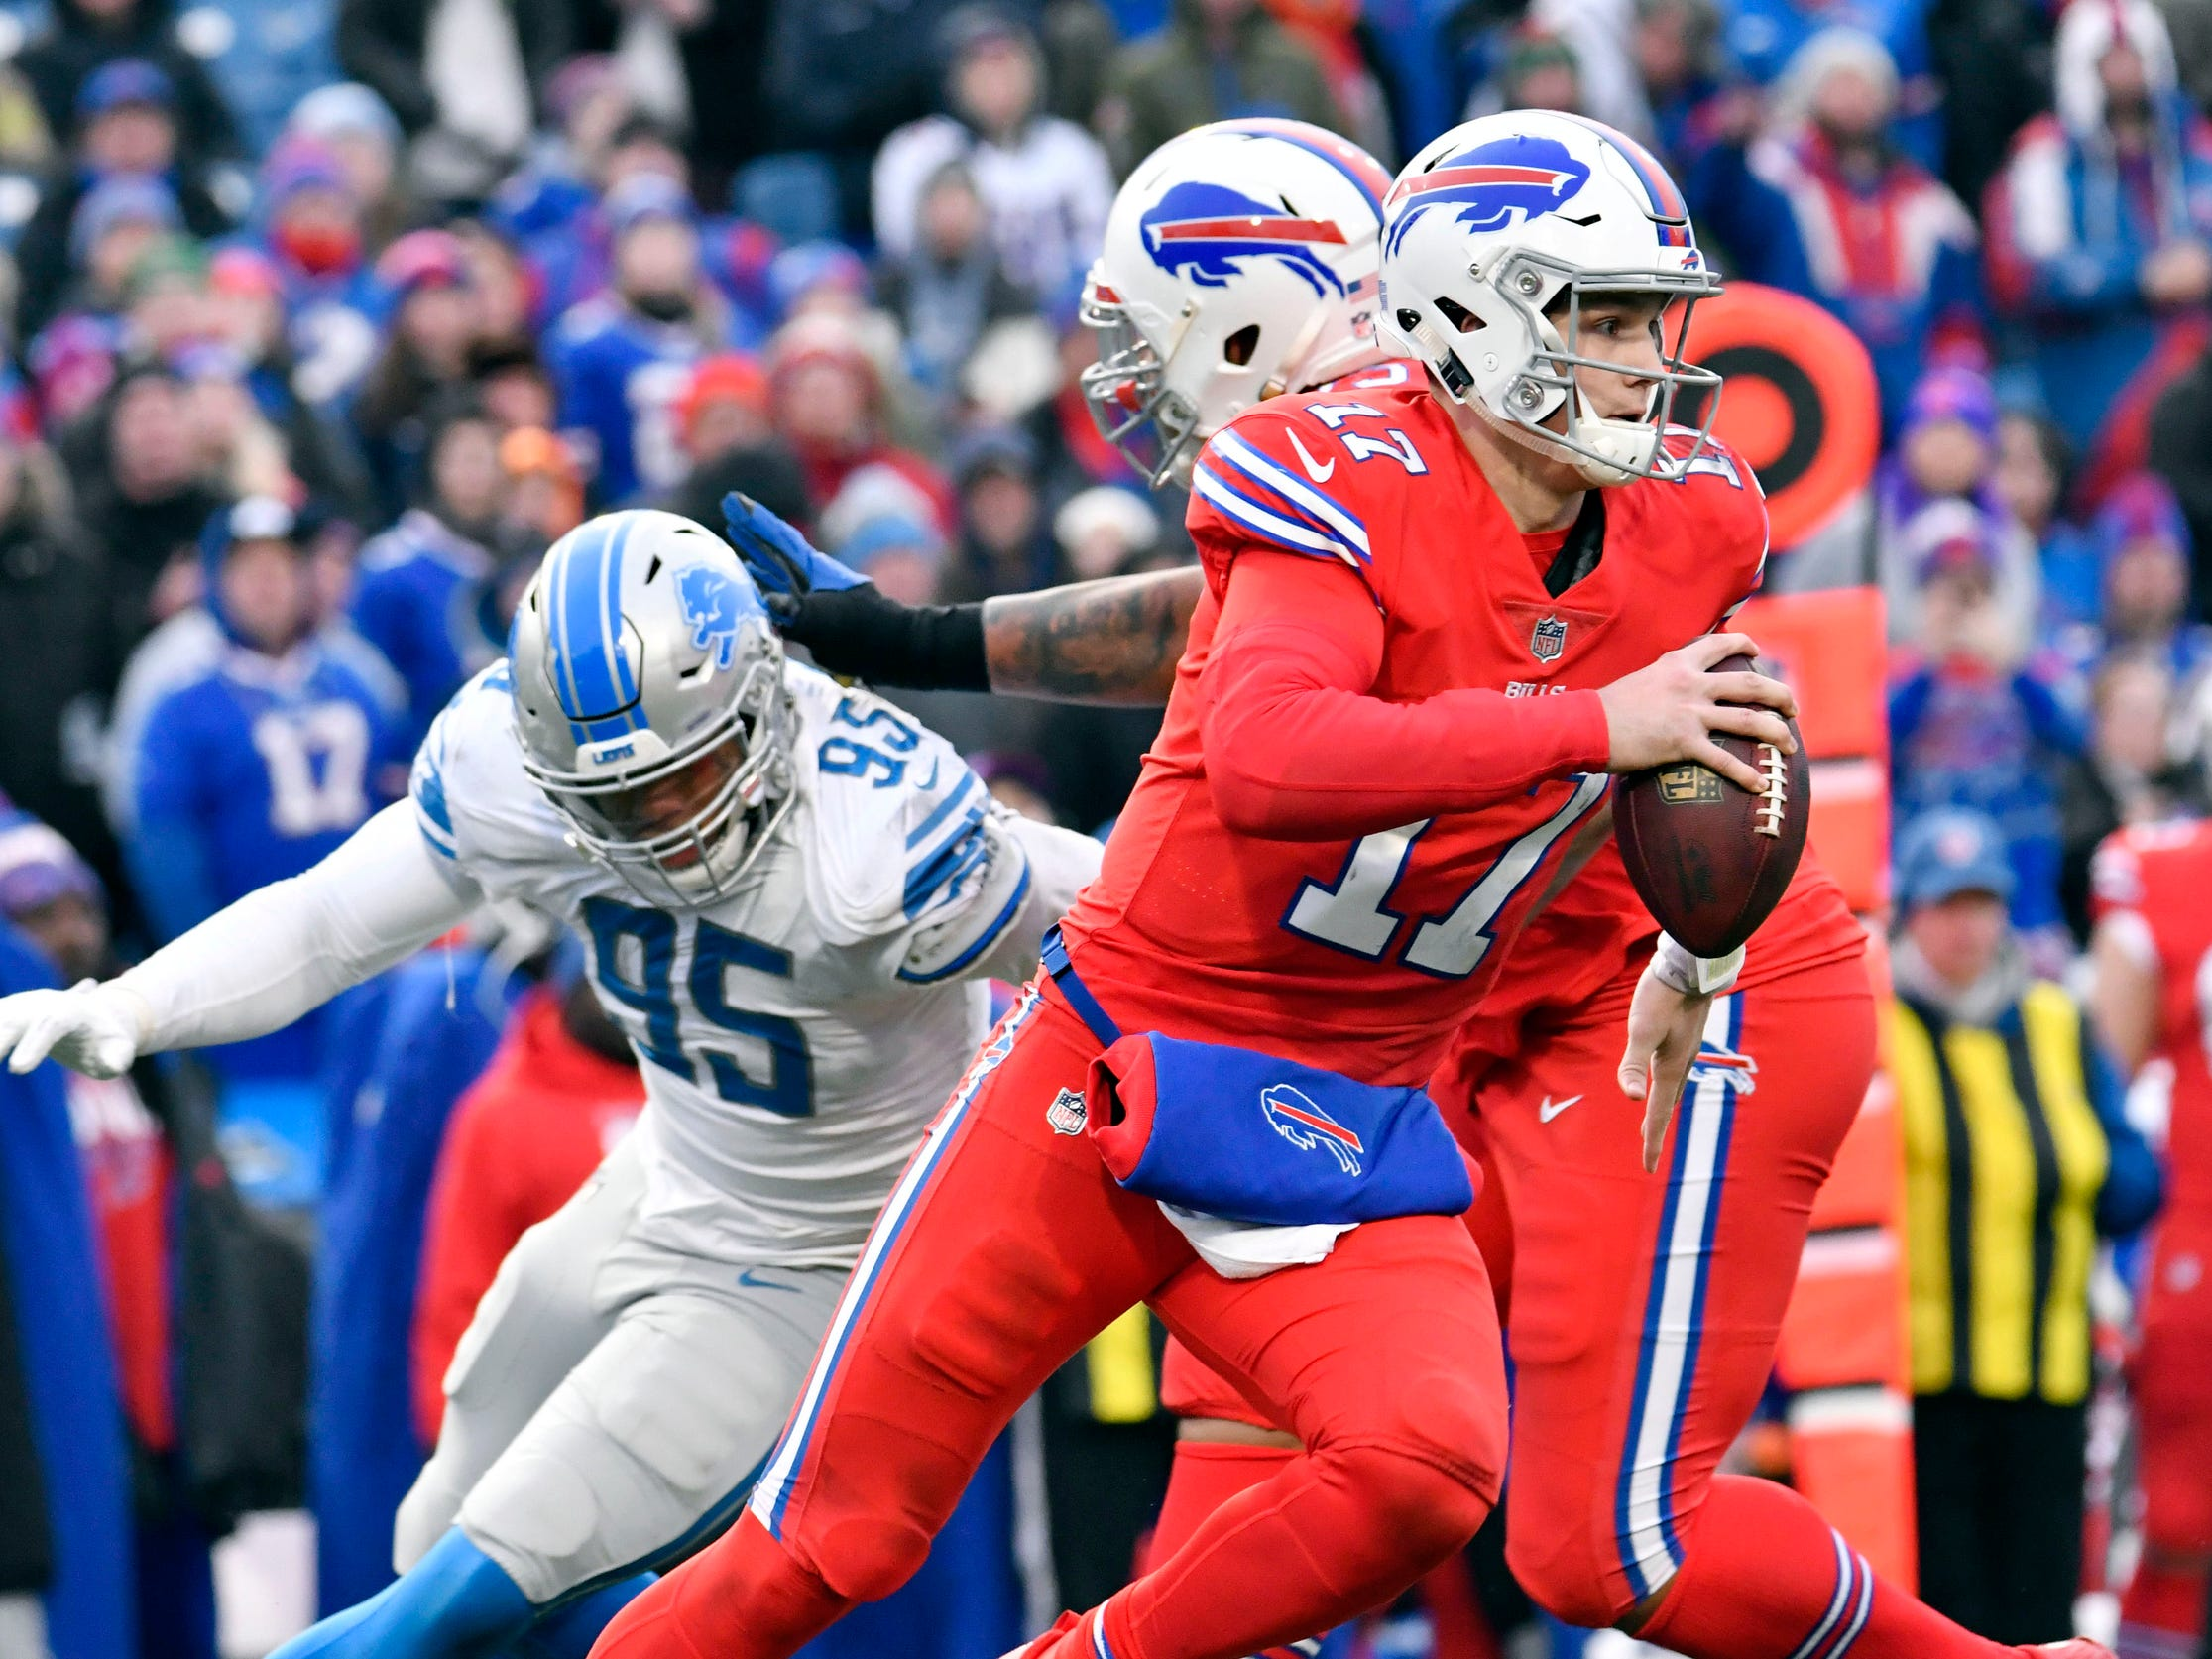 Bills quarterback Josh Allen runs out of the pocket as Lions defensive end Romeo Okwara applies pressure in the fourth quarter of the Lions' 14-13 loss on Sunday, Dec. 16, 2018, in Orchard Park, N.Y.